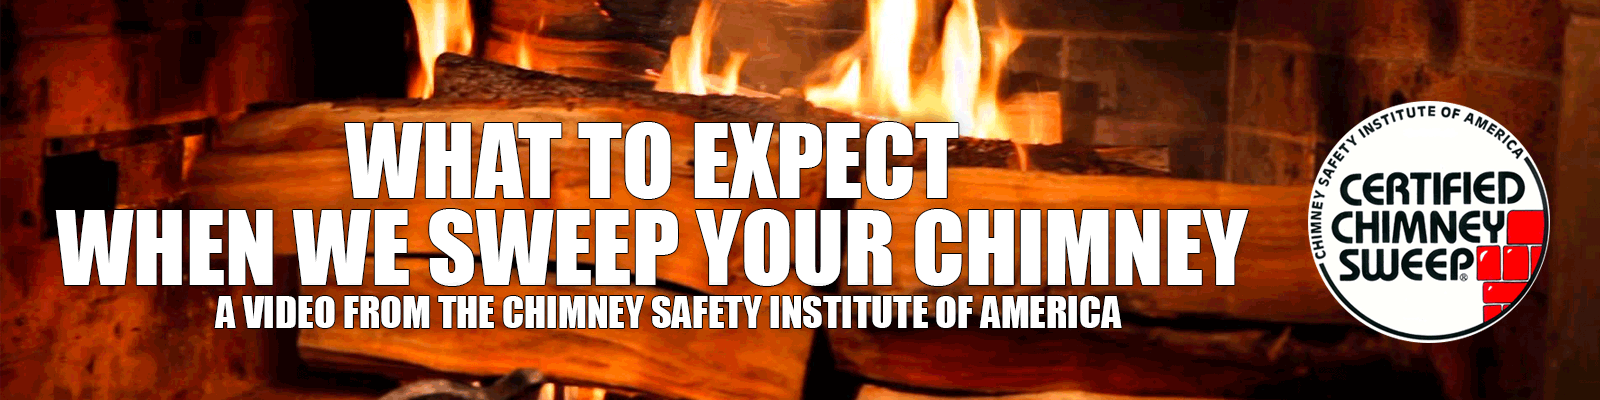 Video from CSIA regarding what to expect from a chimney inspection